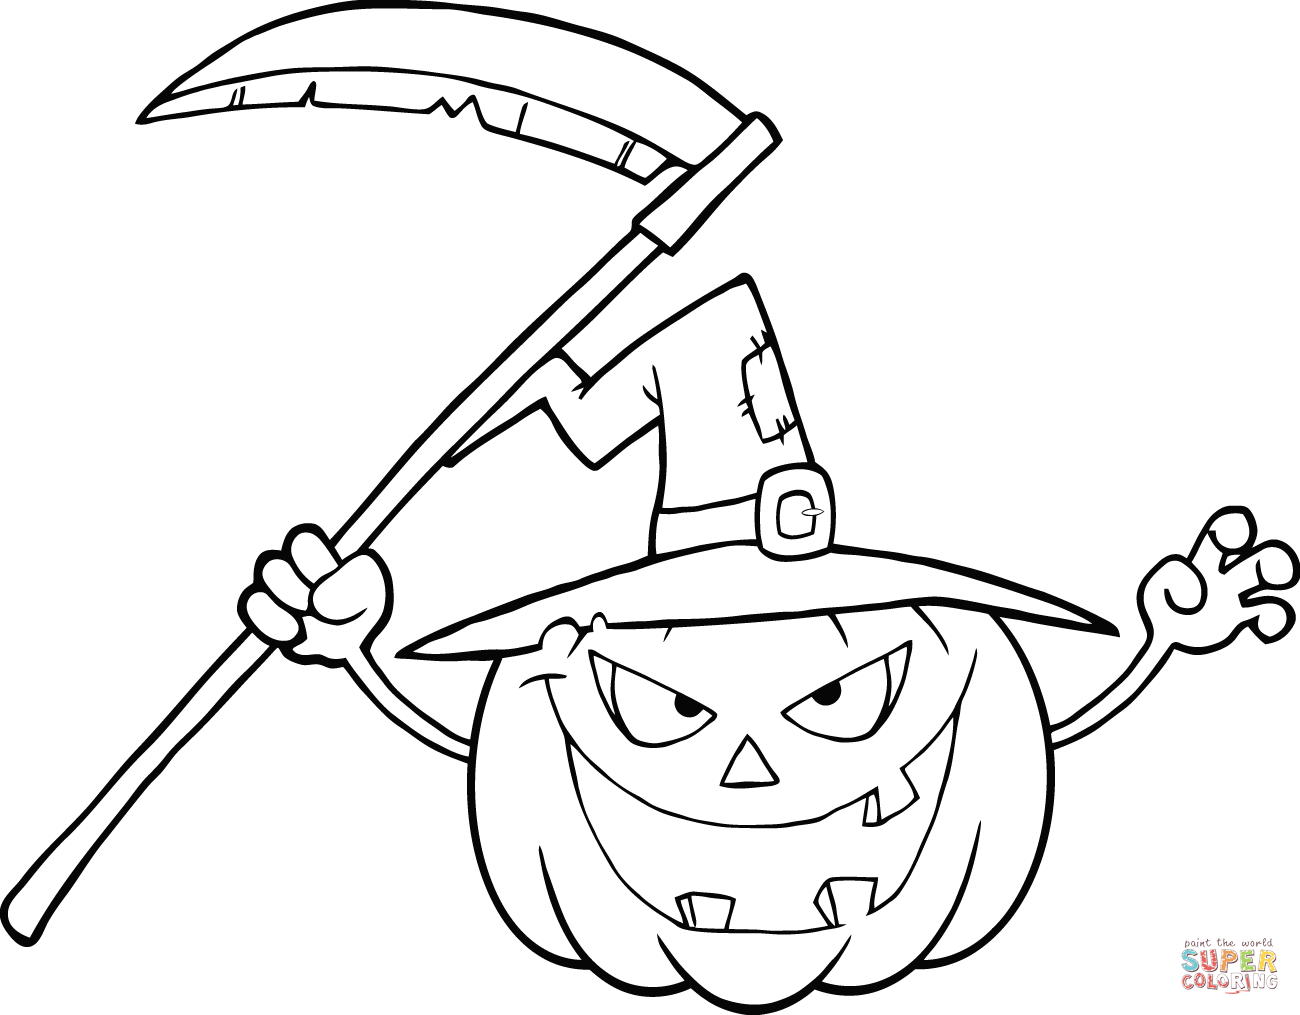 Drawn pumpkin coloring page halloween Coloring pages Scythe Pages with